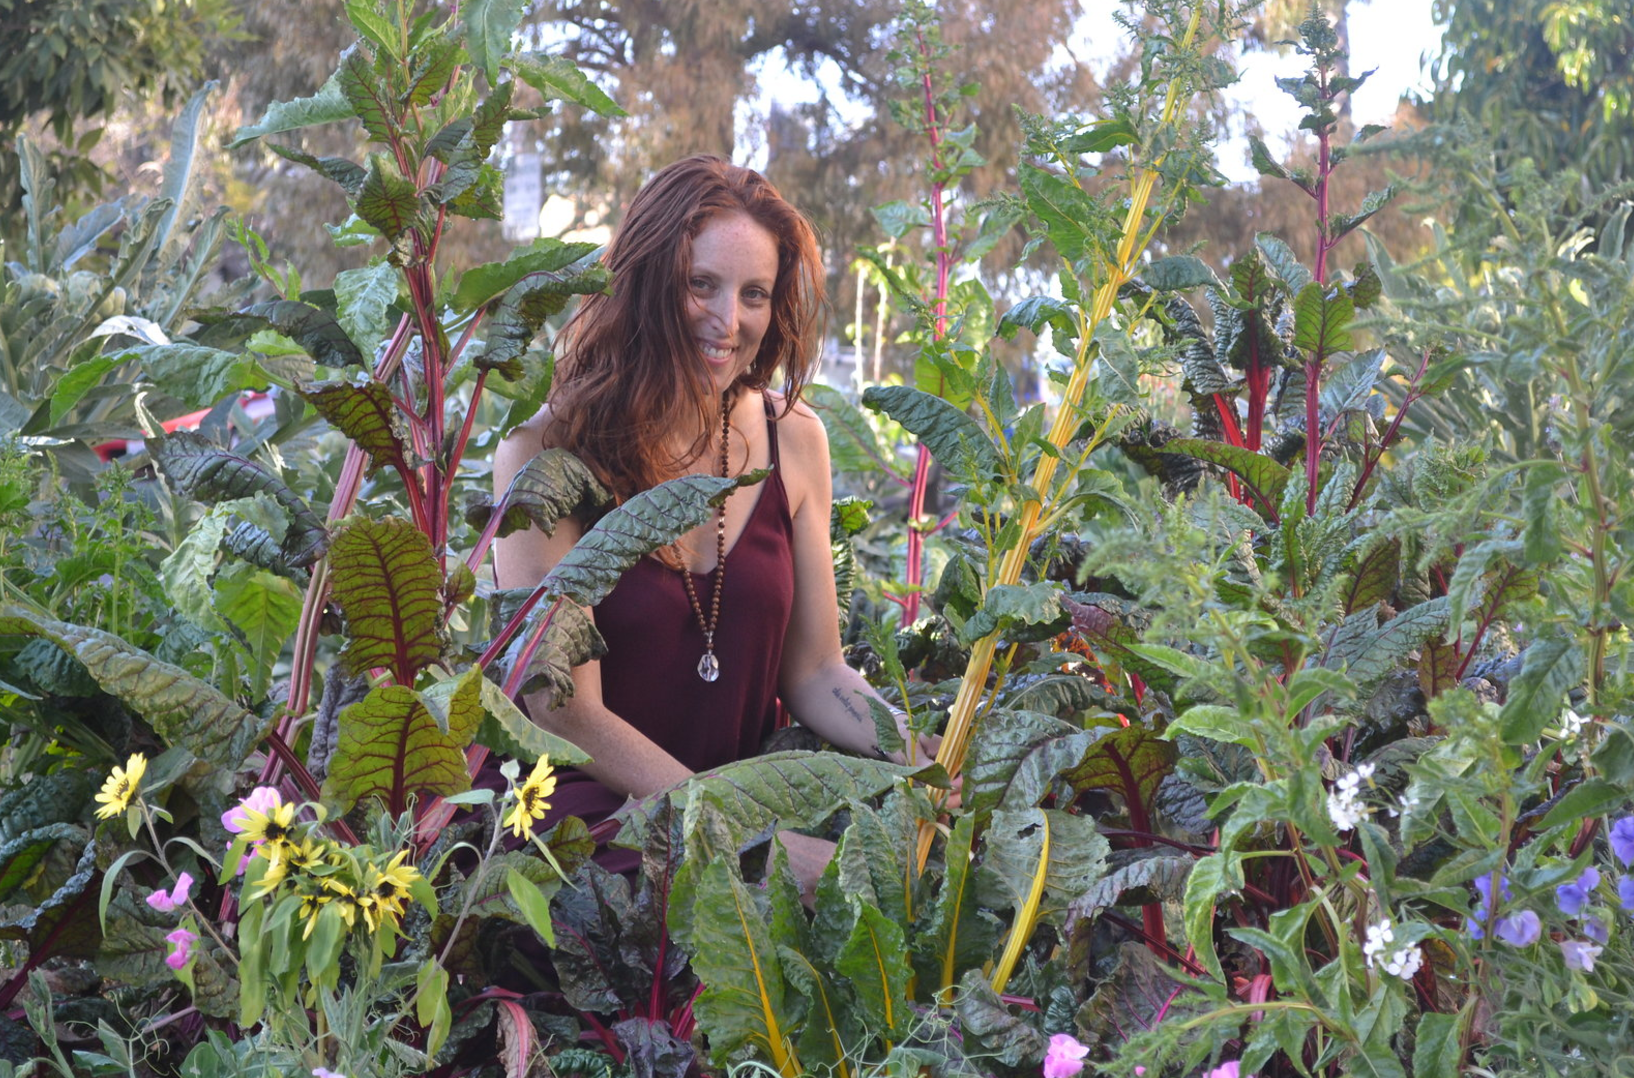 Our Head Earthling,Jill Volat in one of her nonprofit's urban farms. Photo by Stacey Lindsey